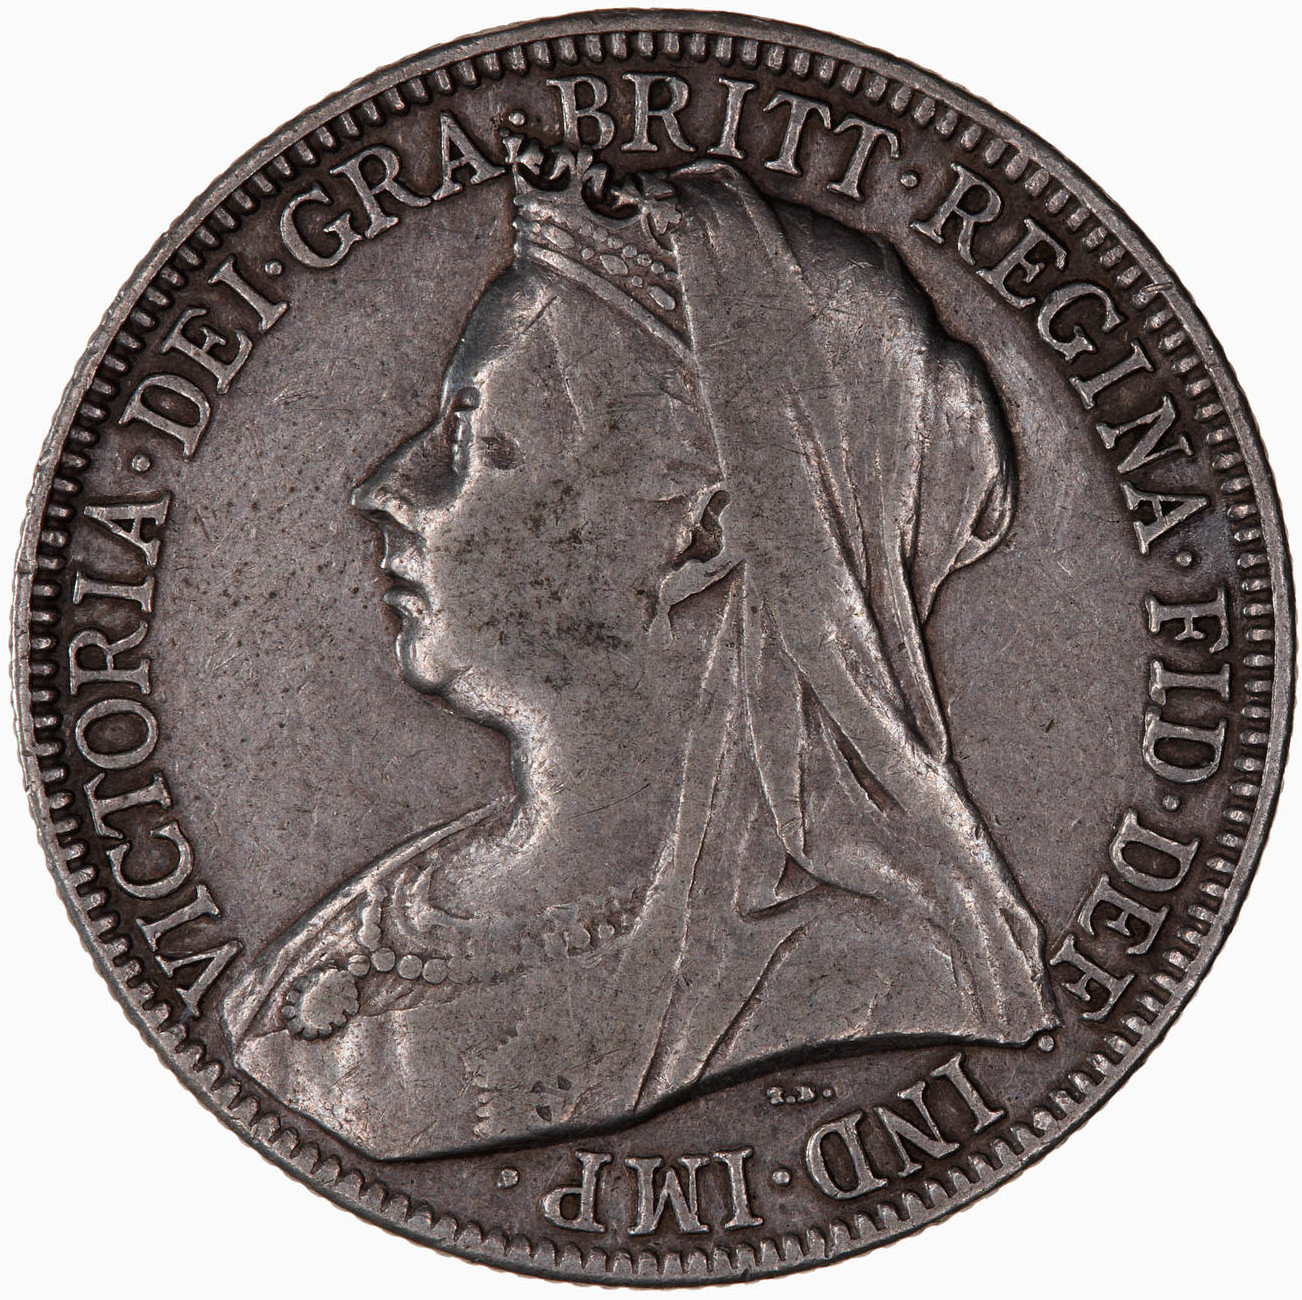 Florin 1901: Photo Coin - Florin, Queen Victoria, Great Britain, 1901